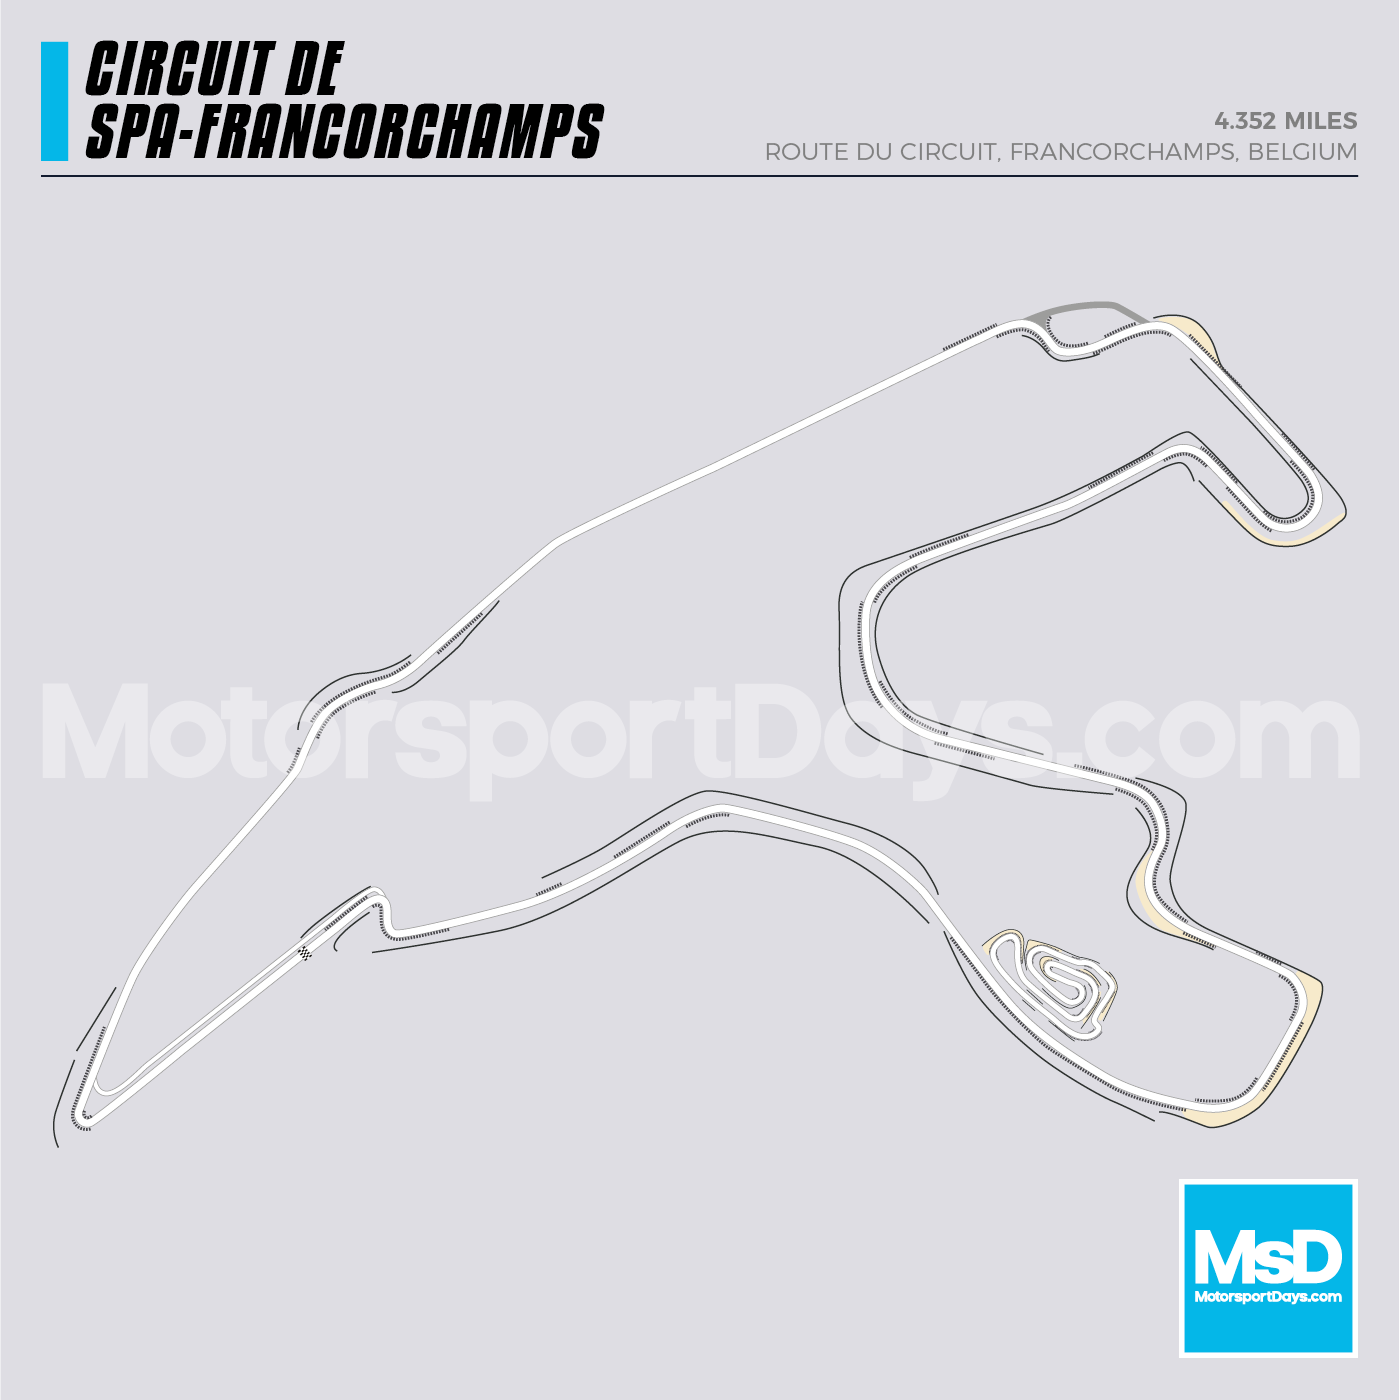 Spa Francorchamps Circuit track map